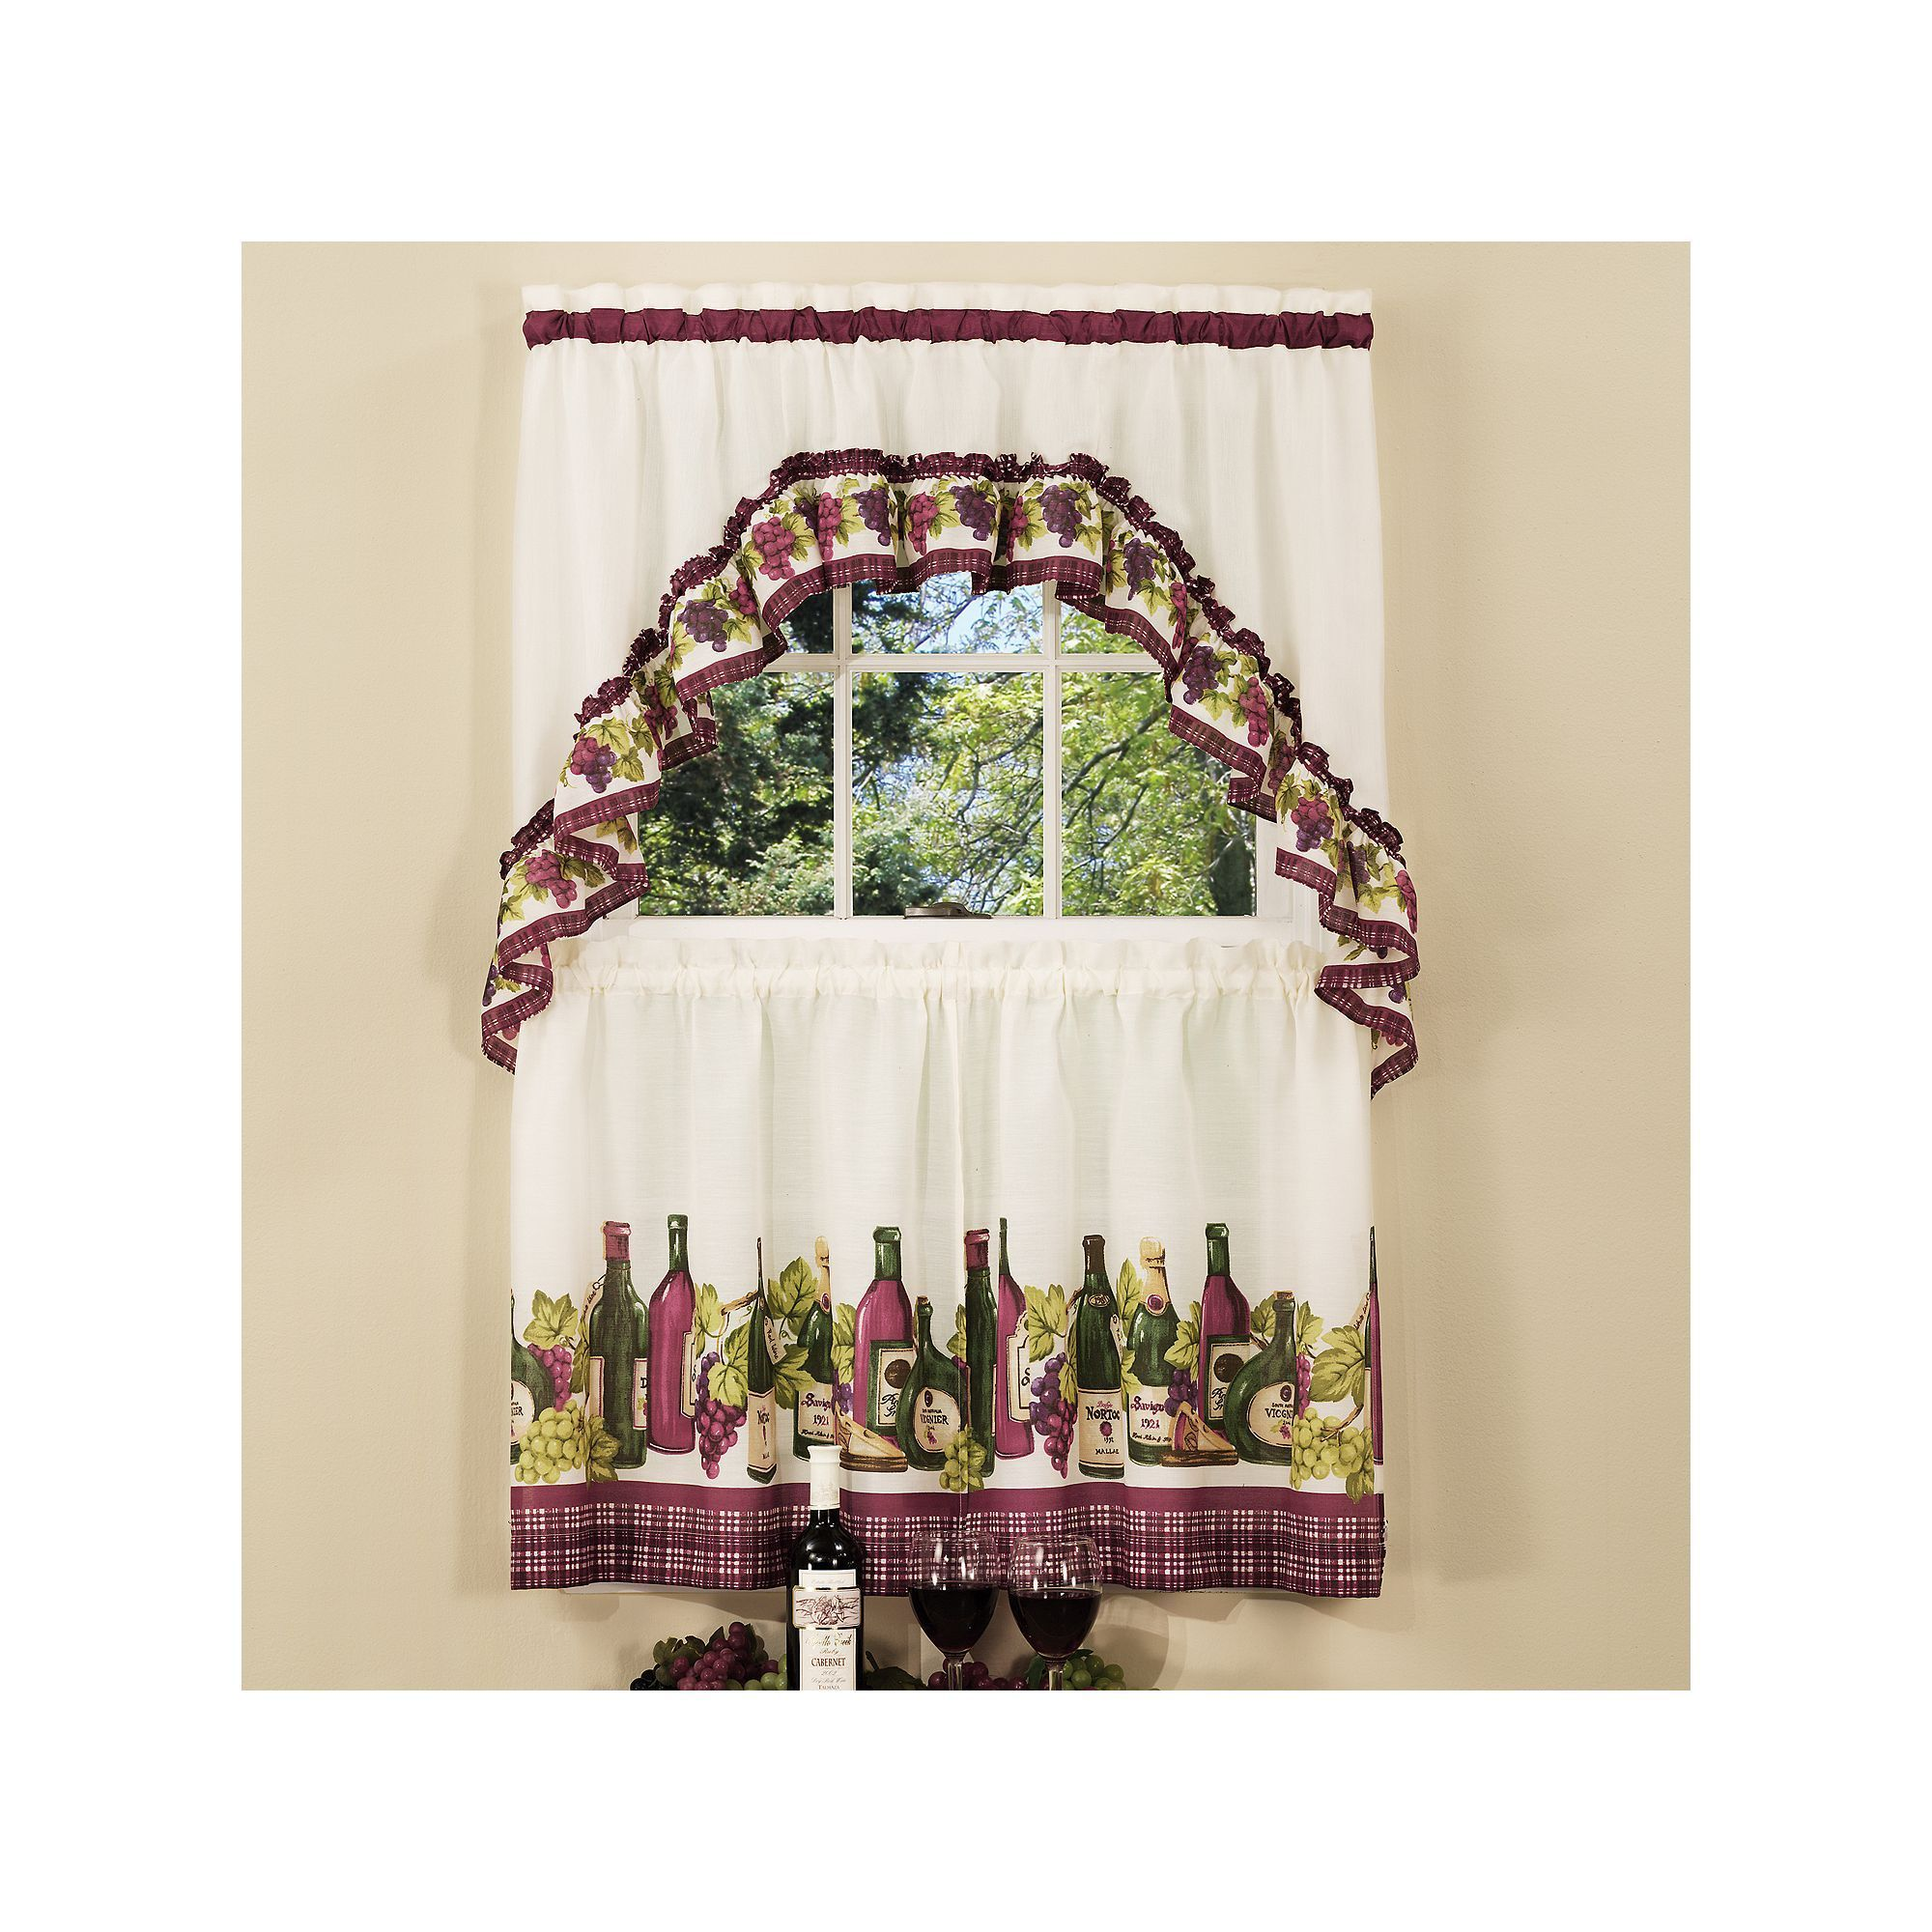 Kitchen window curtain  Kohlus Chardonnay Wine Bottle piece Tier Swag Kitchen Window